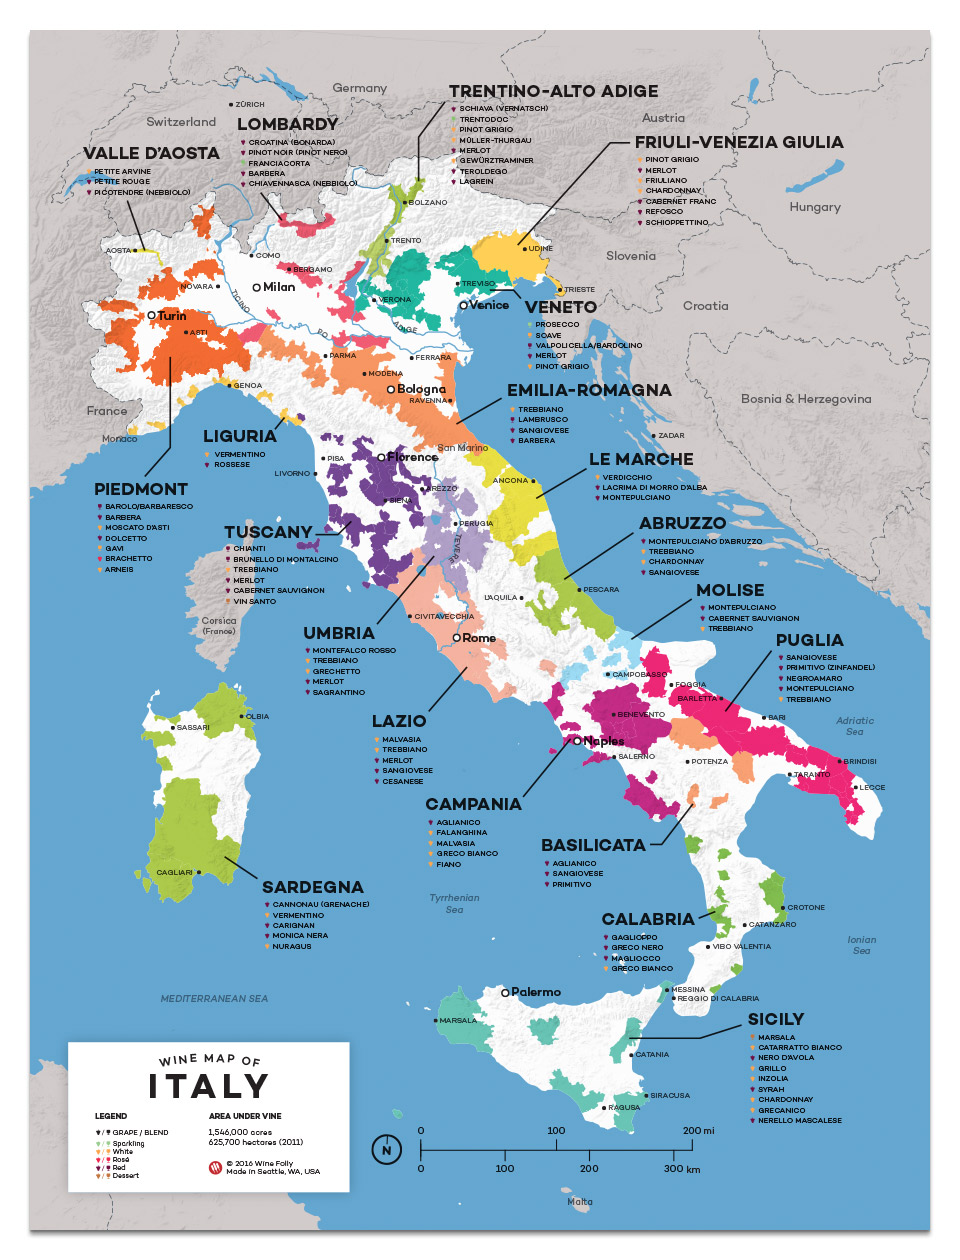 https://media.winefolly.com/12x16-Italy-All-wine-map2.jpg